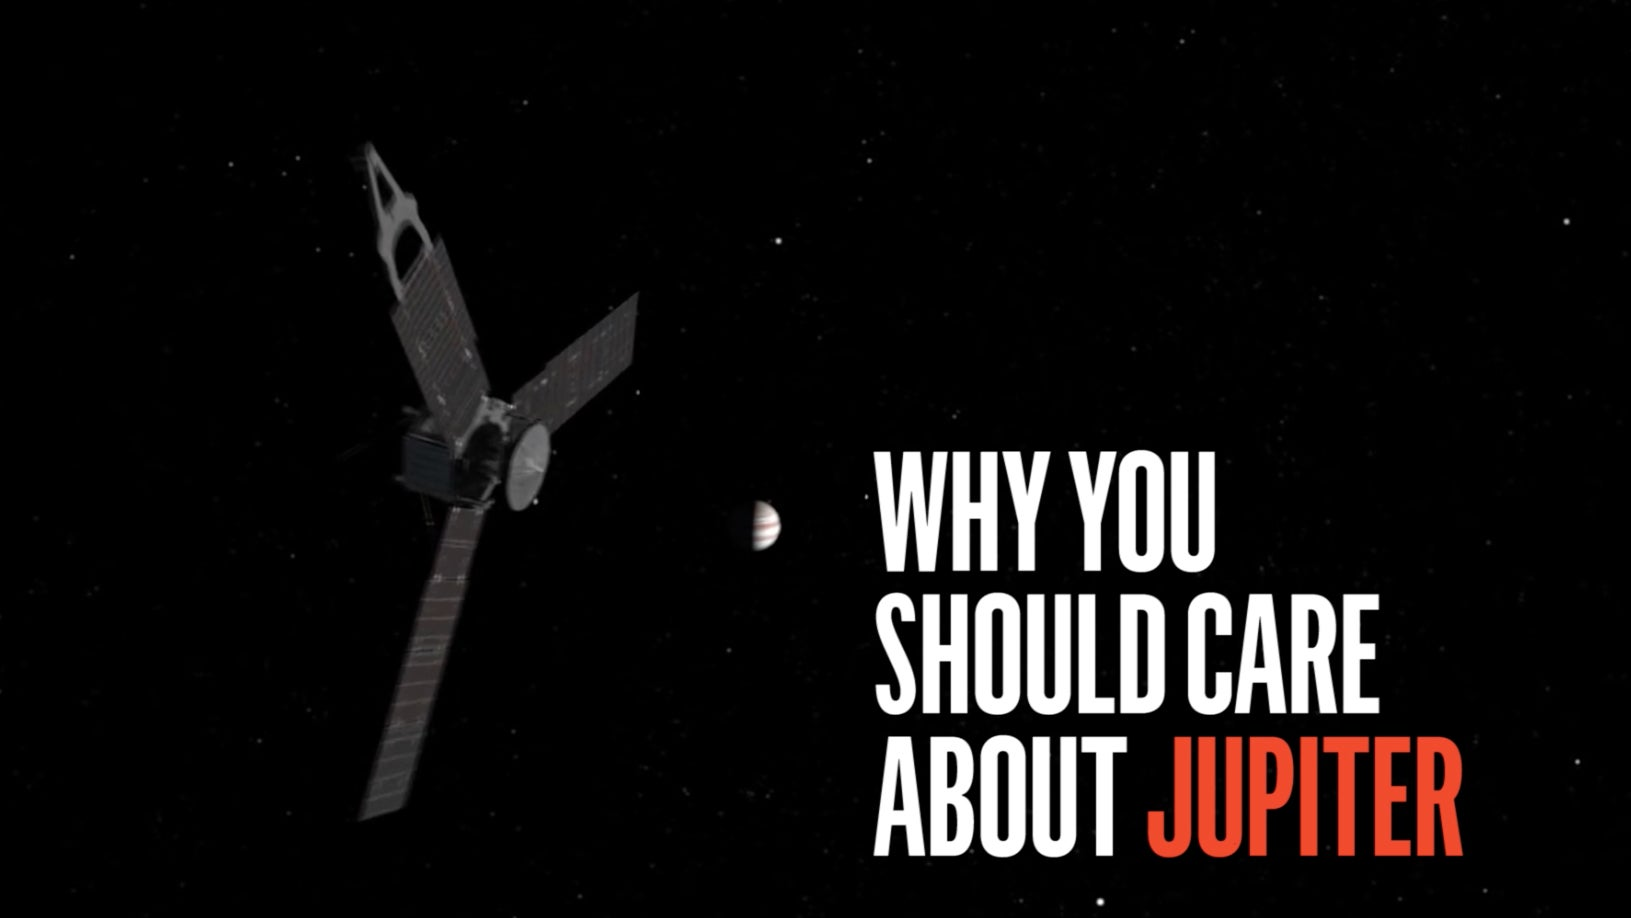 Why You Should Care About Jupiter